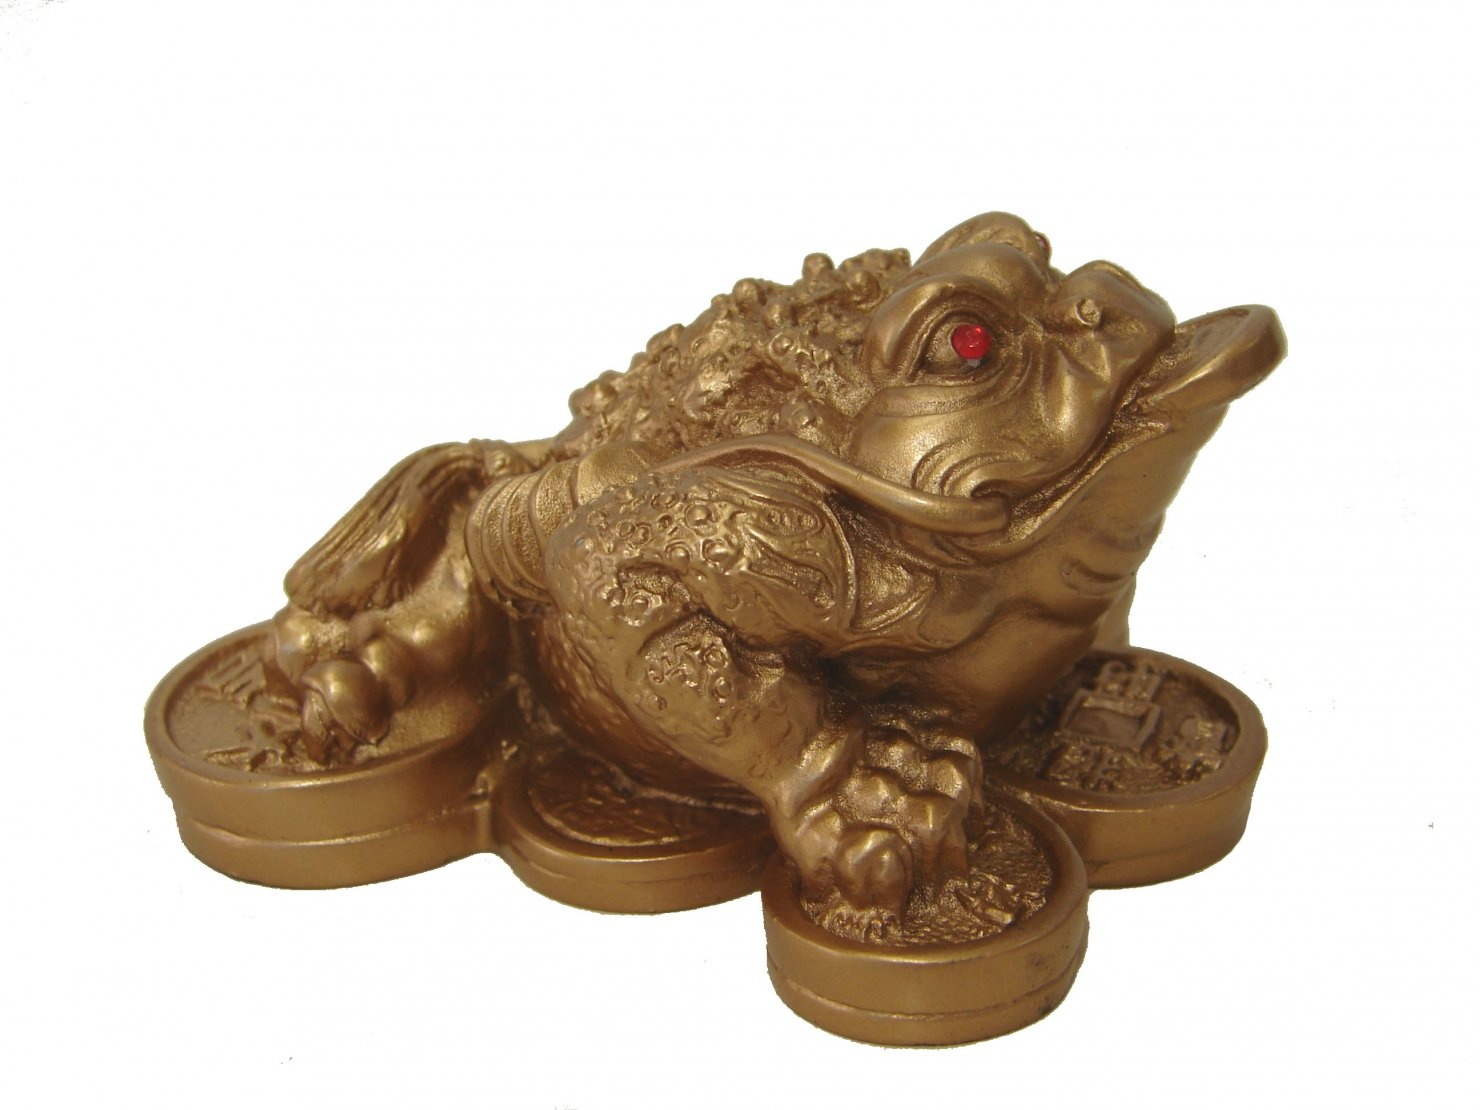 1 X Feng Shui Money Frog /Money Toad Attract Wealth Feng Shui Import